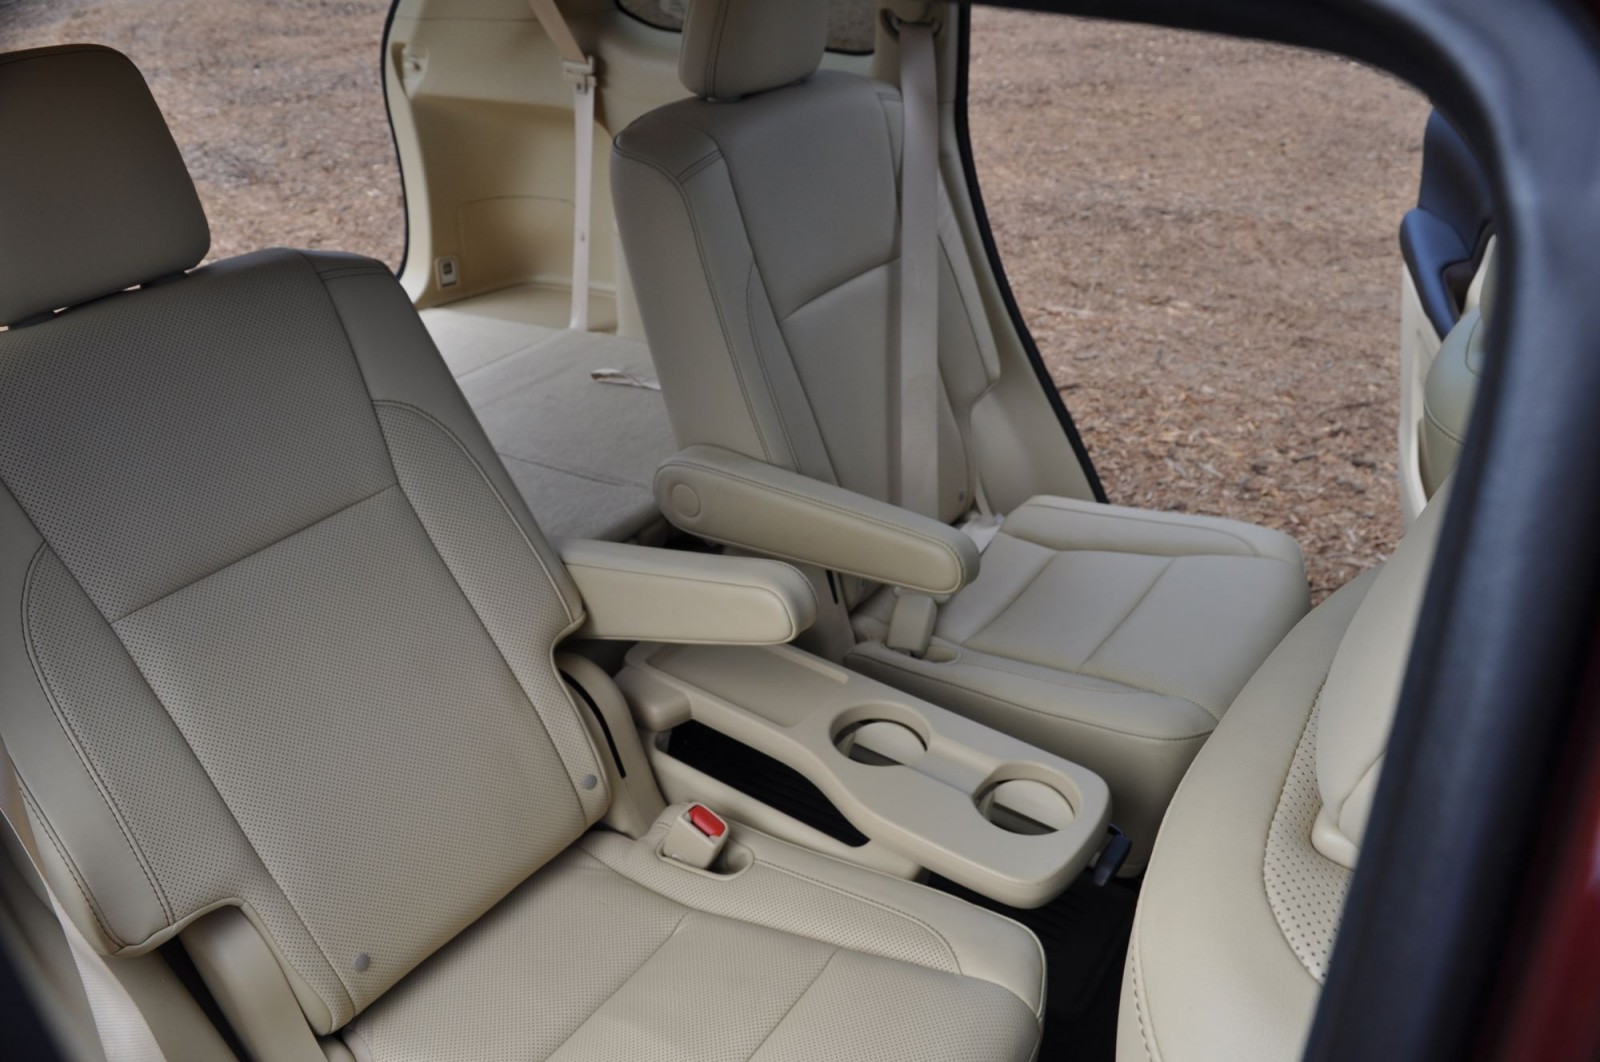 Toyota Highlander Captains Chairs 2015 Toyota Highlander Awd Limited Review